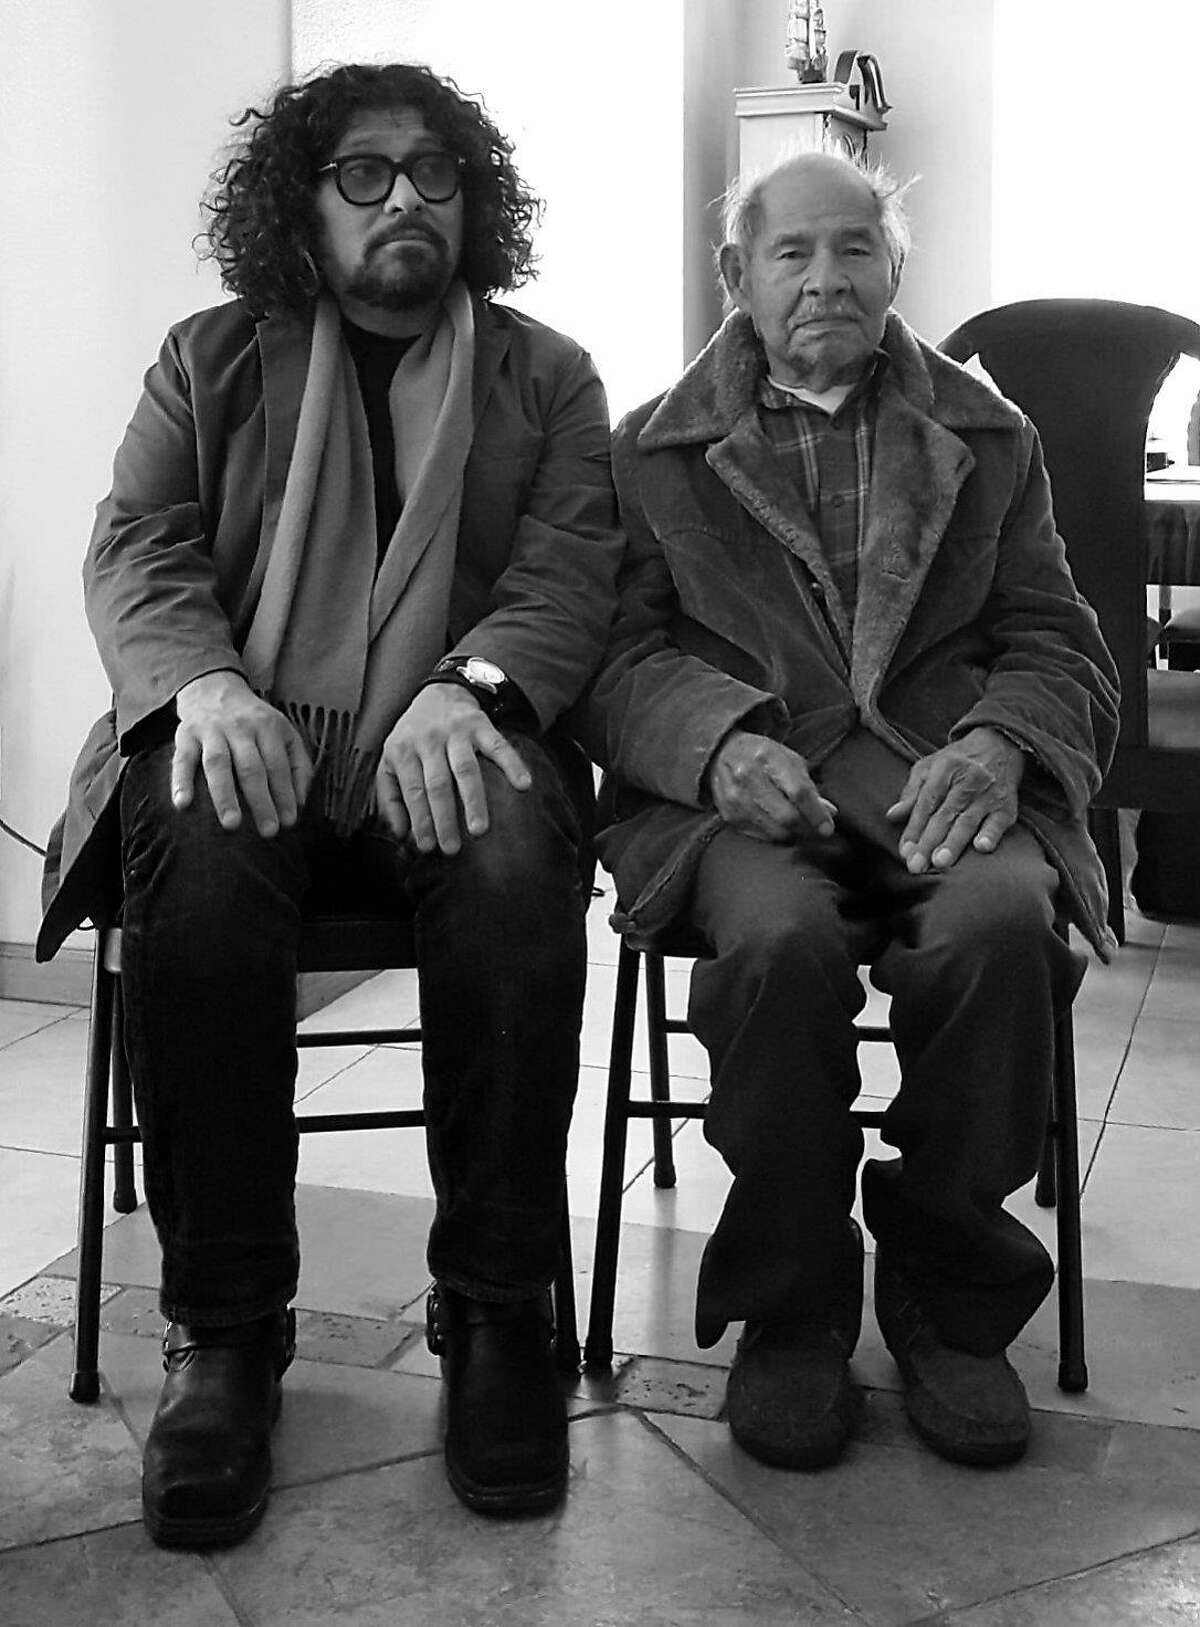 Victor Cartagena (left) with 101-year old former farm worker Maurillo Maravilla, the model for Cartagena's work